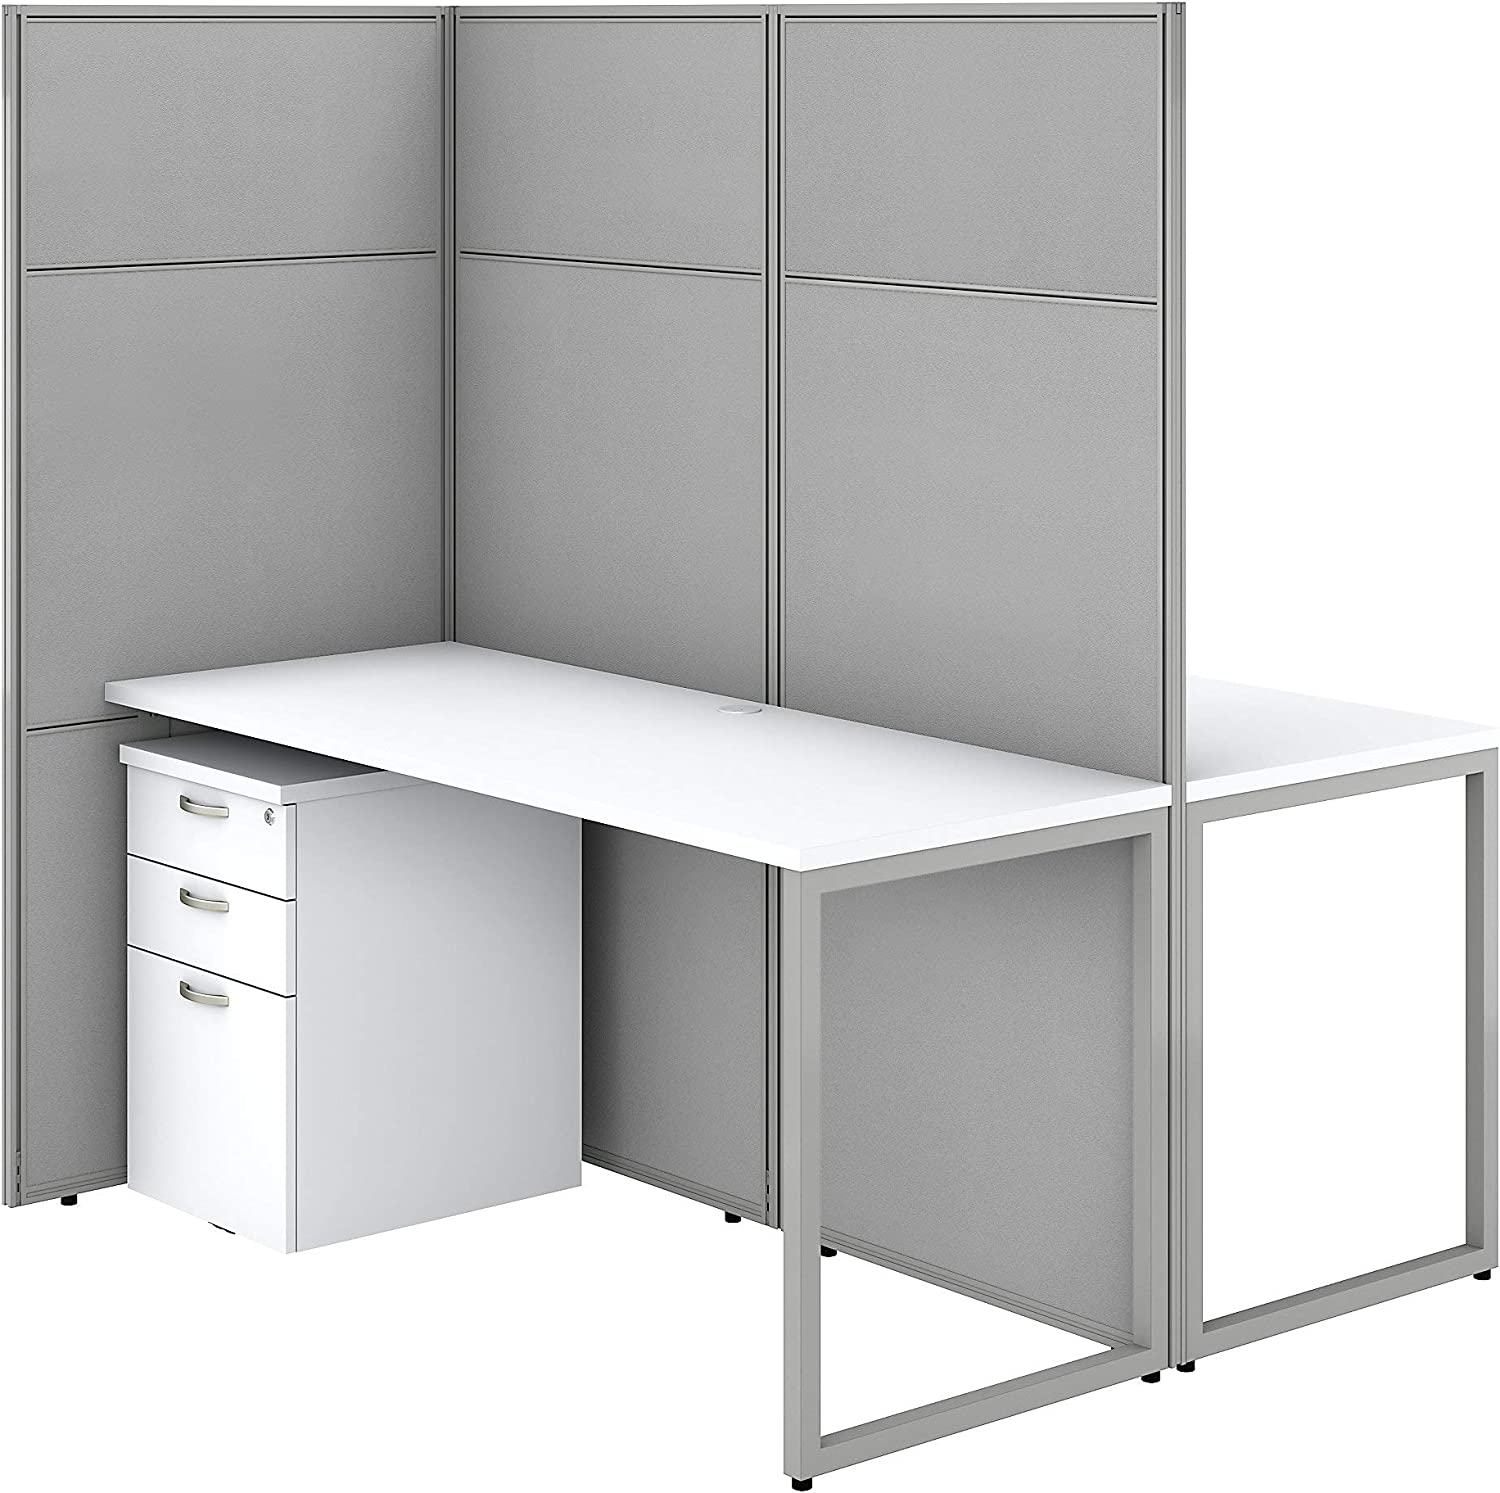 Bush Business Furniture Easy Office 2 Person Cubicle Desk with File Cabinets, 60W x 66H, Pure White